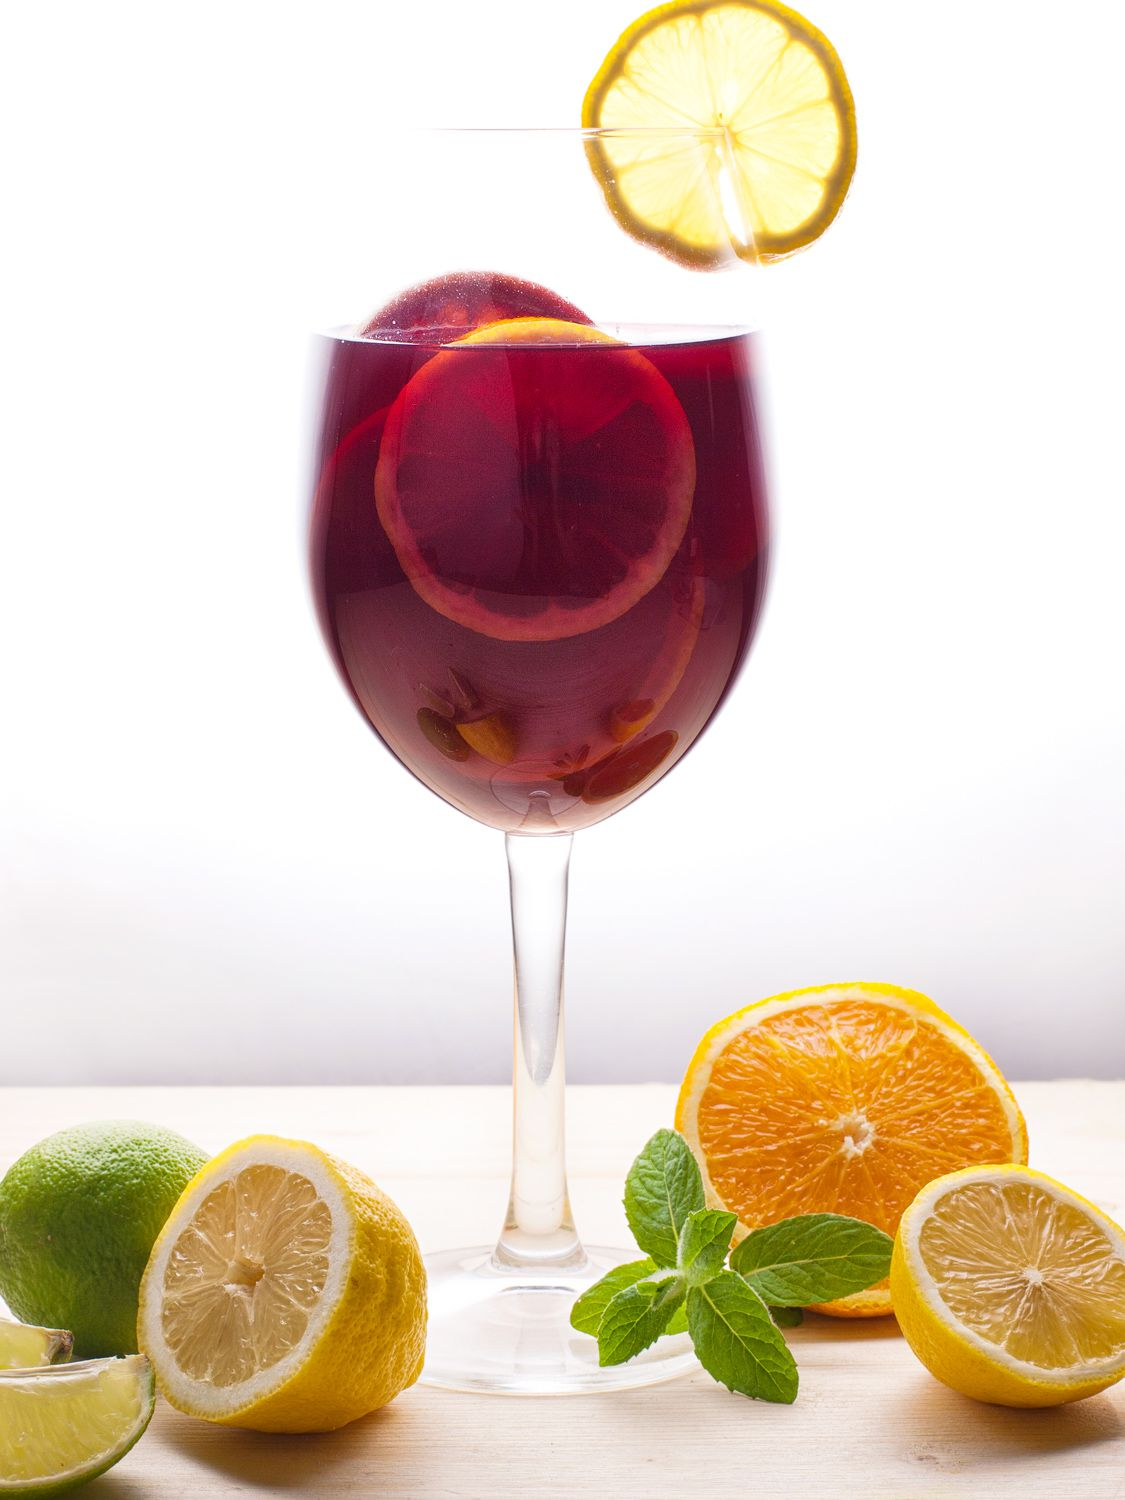 Add club soda and garnish glass of sangria with lemon before serving